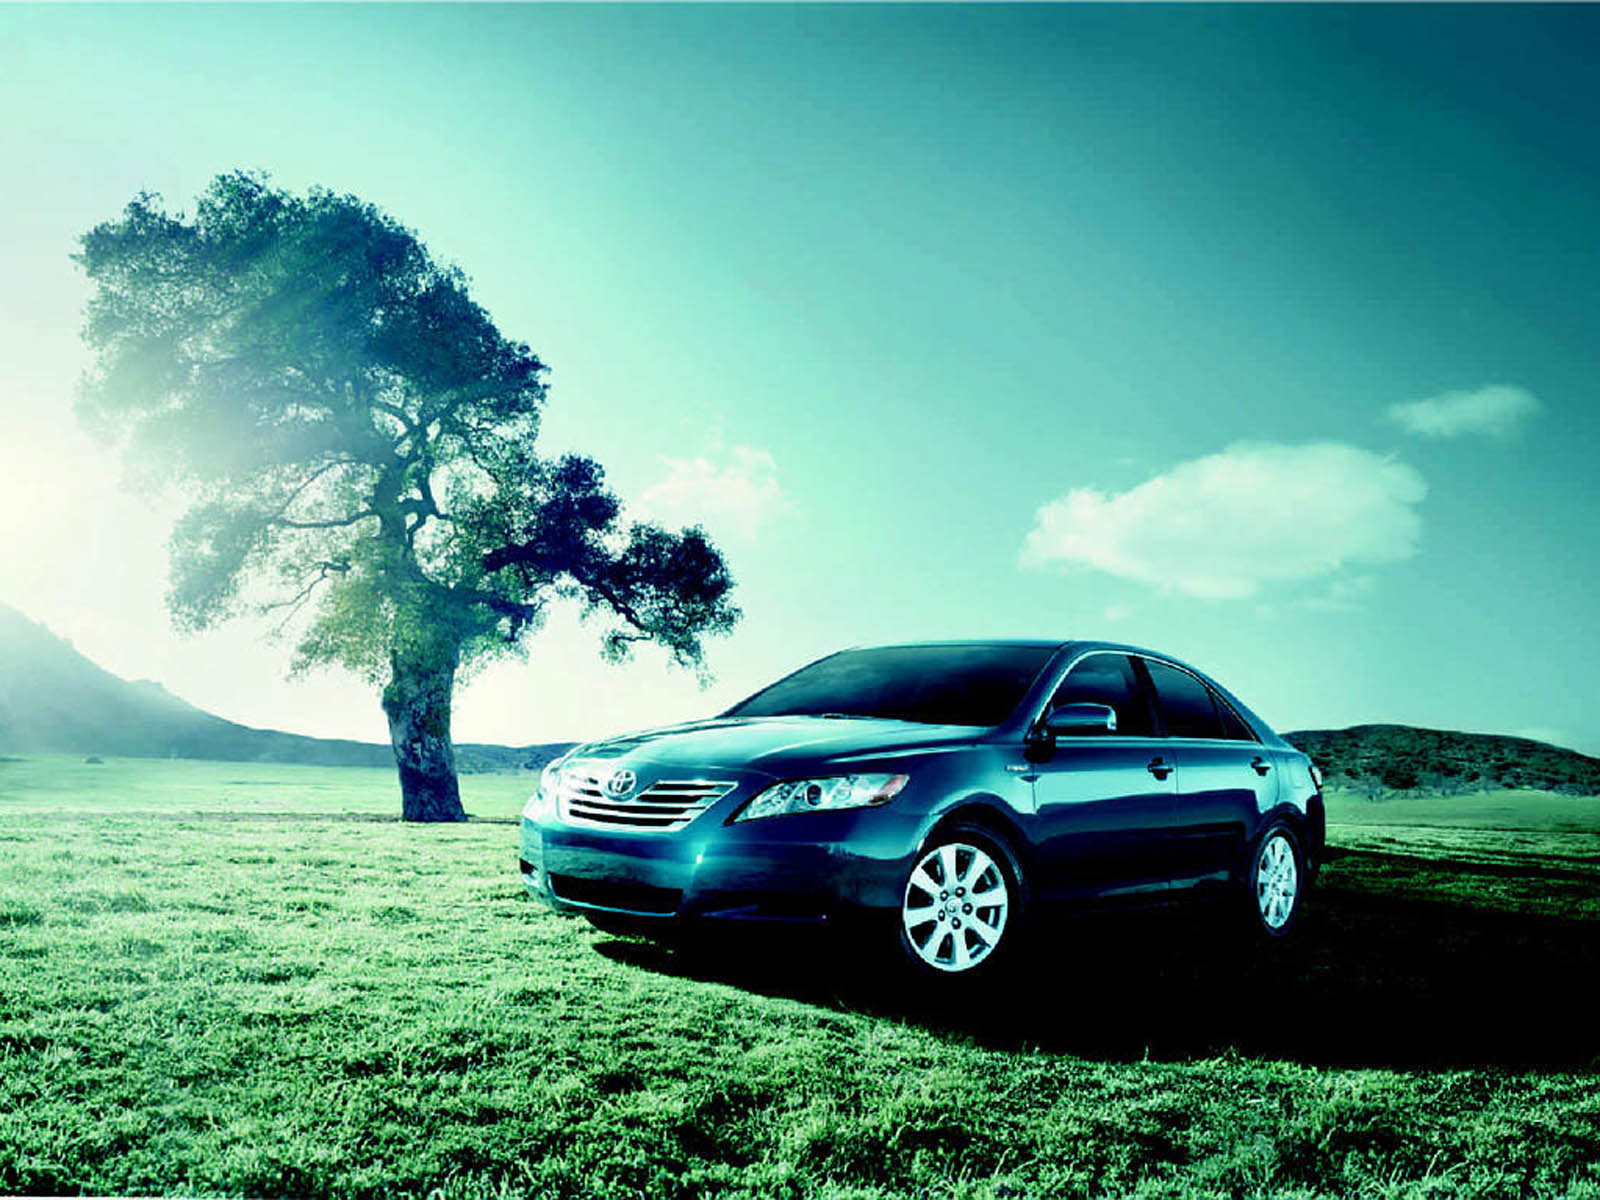 wallpapers Toyota Camry Car Wallpapers 1600x1200